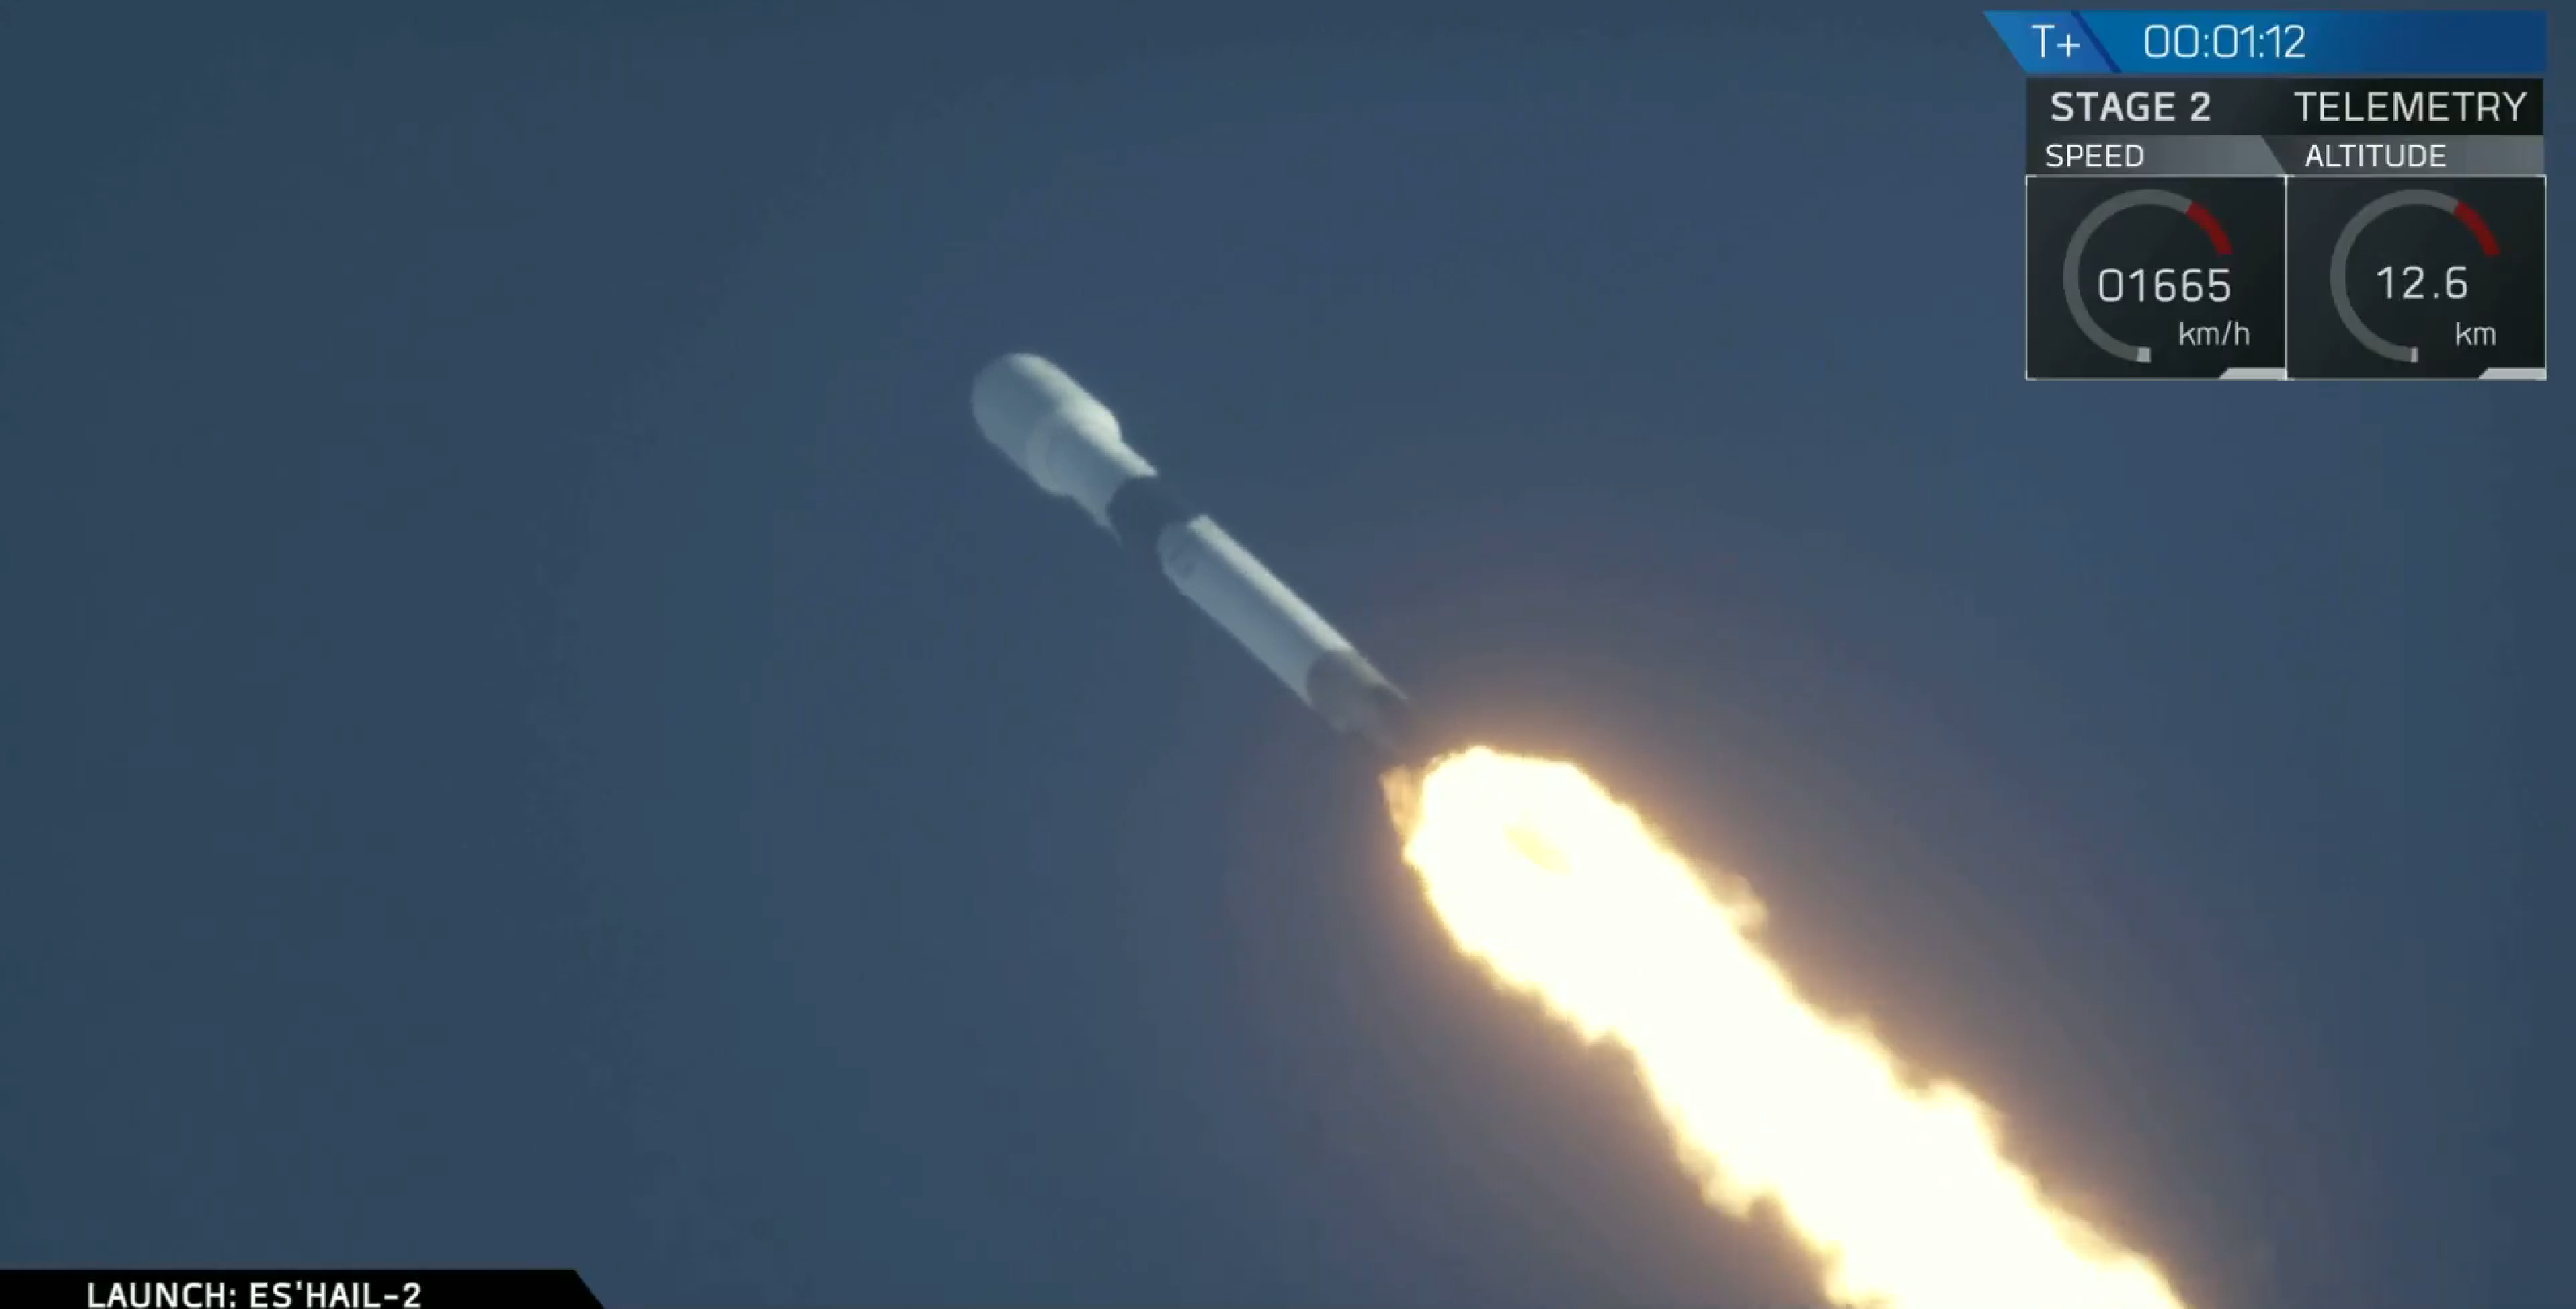 B1047.2 liftoff (SpaceX) 3